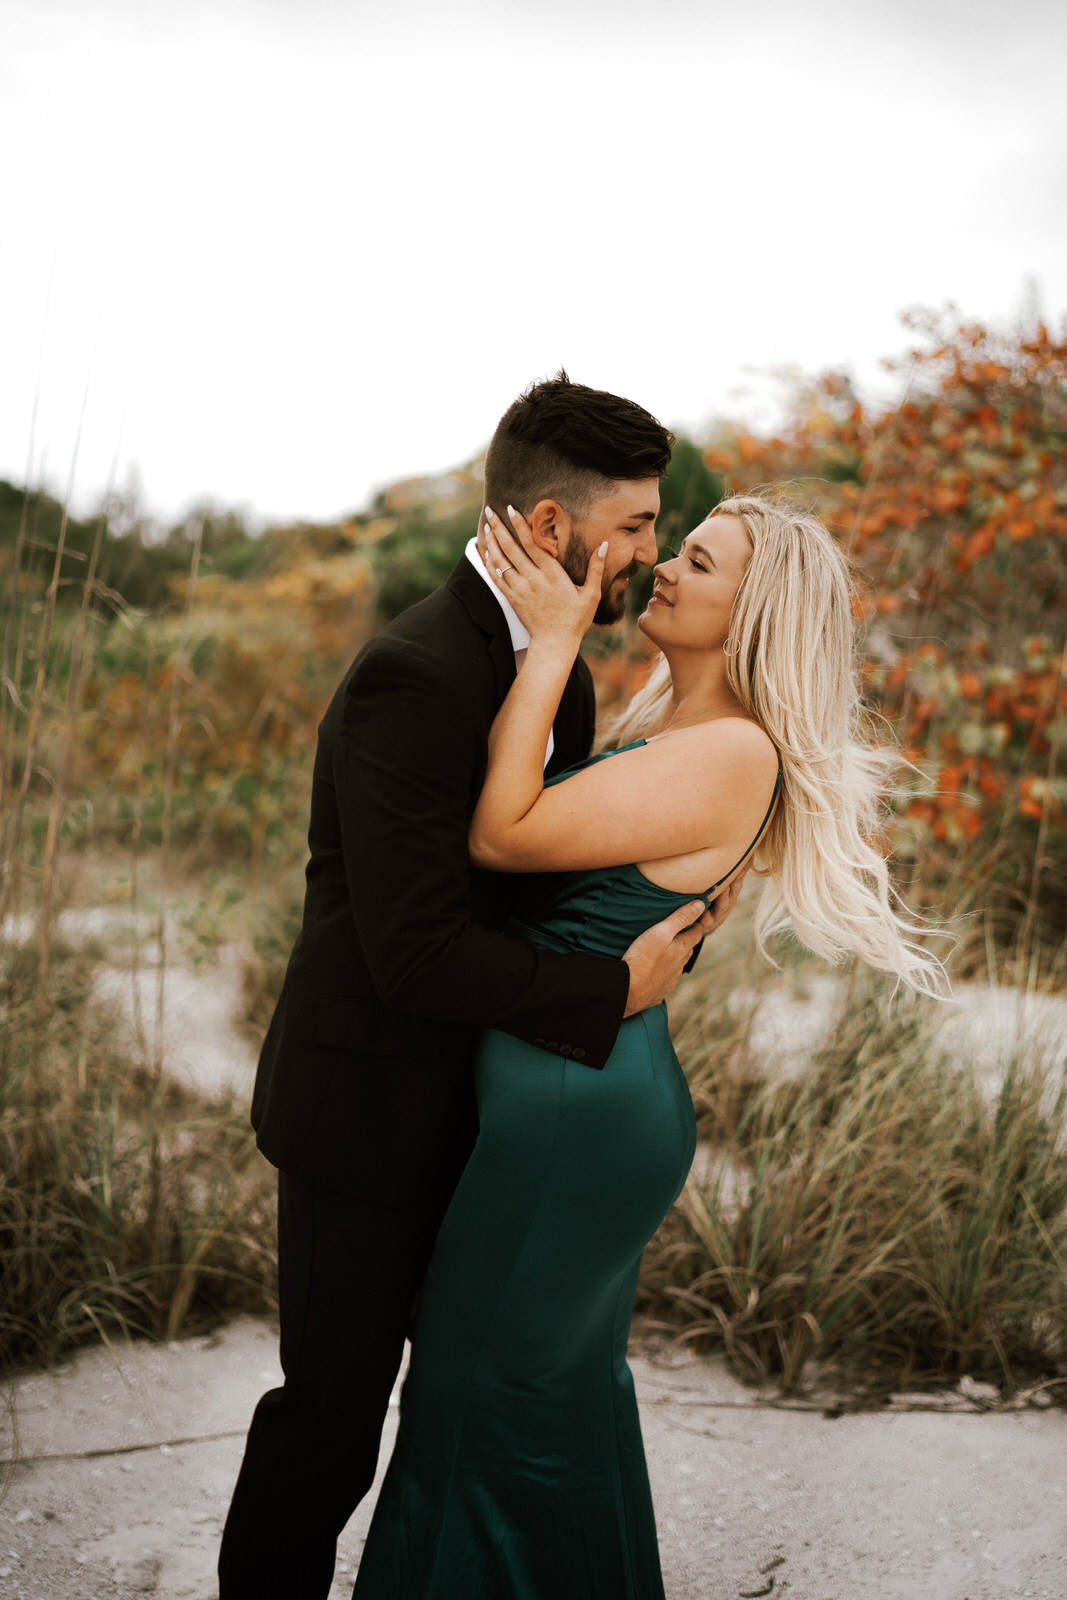 Lover's Key State Park Engagement Photos- Fort Myers Beach- Michelle Gonzalez Photography- Contessa and Ethan-189.JPG